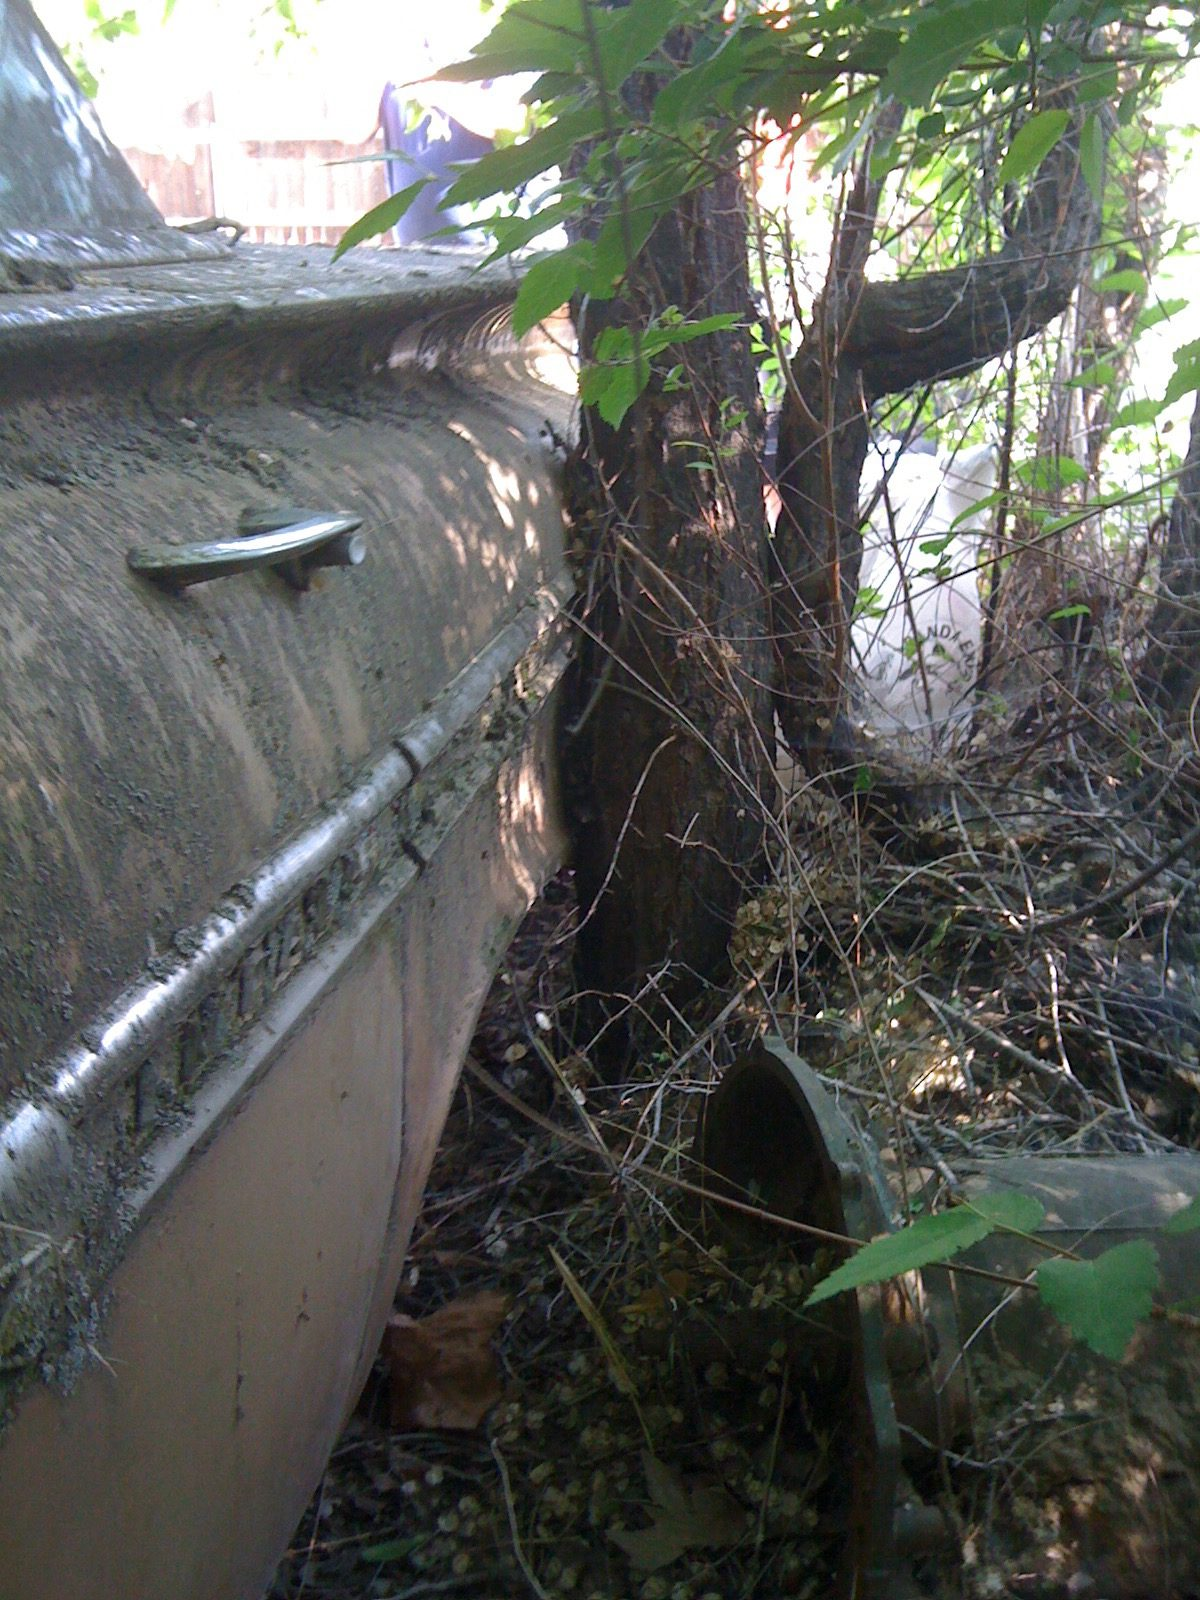 1959 Chevrolet Impala side and tree unrestored